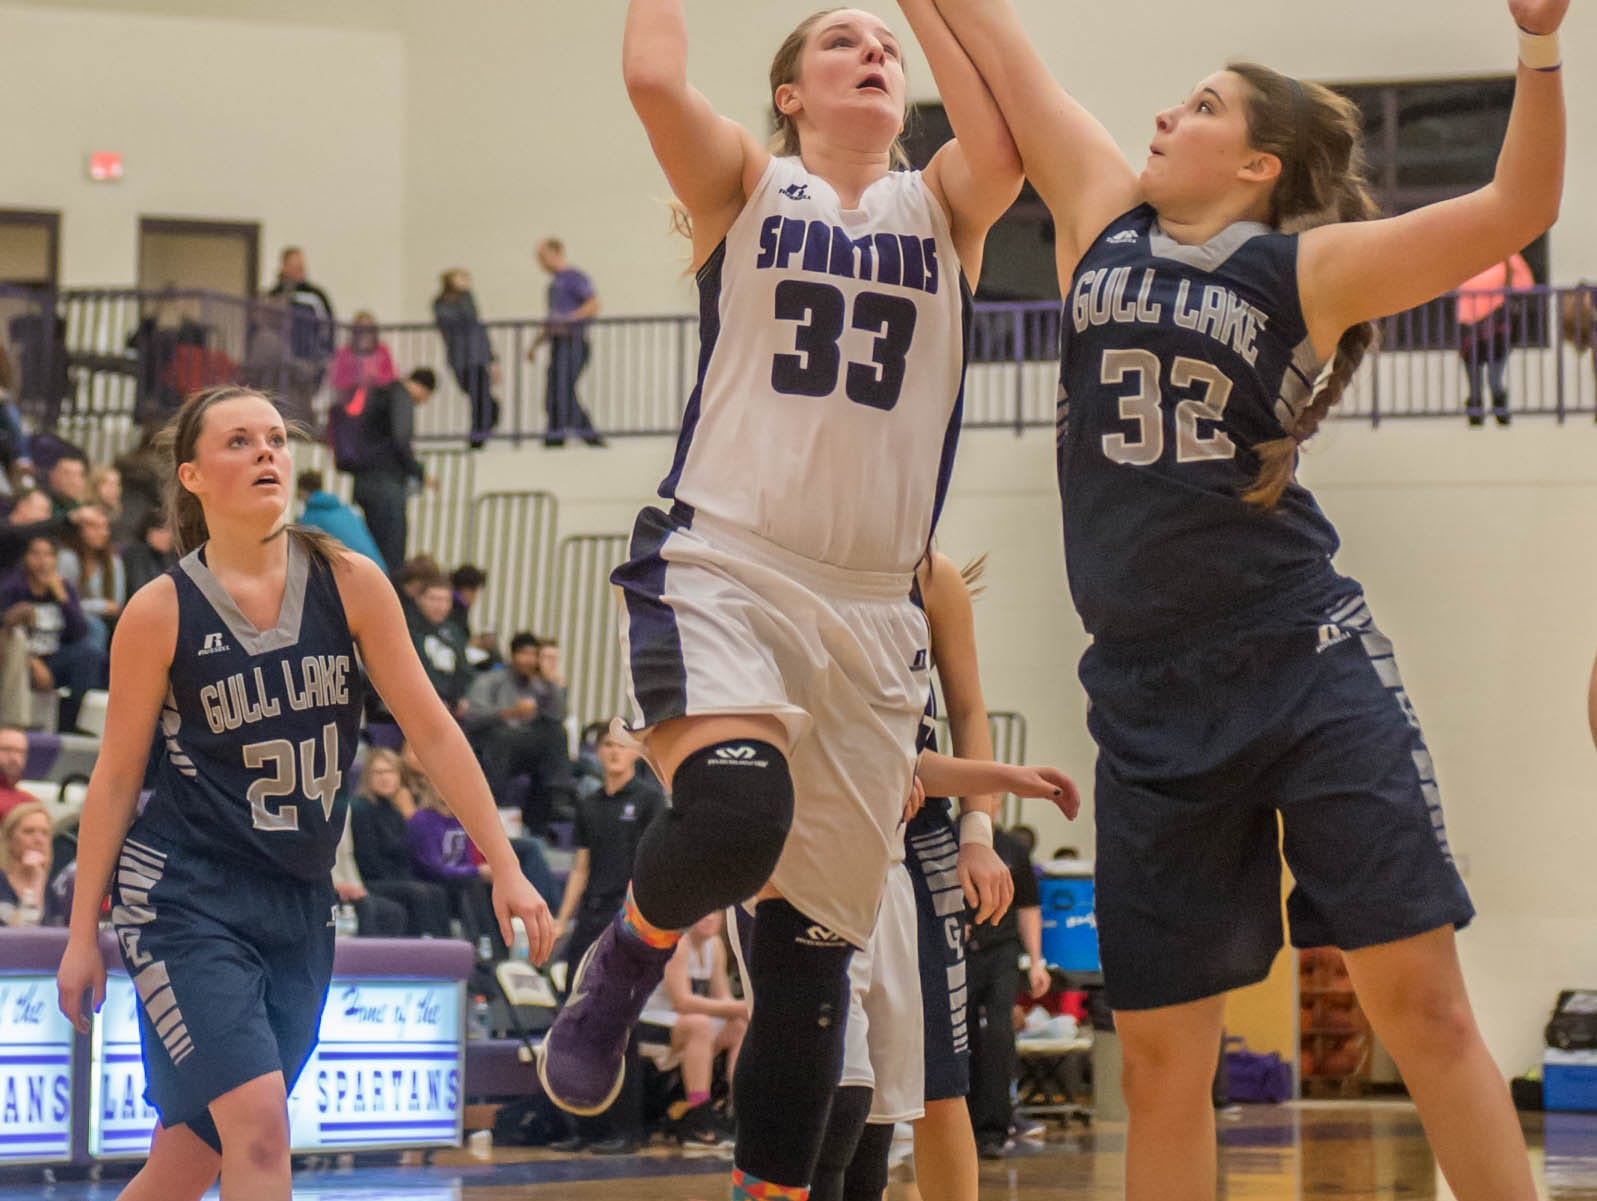 Lakeview's Jessalynn Genier takes her shot against Gull Lake in Friday evening's game.